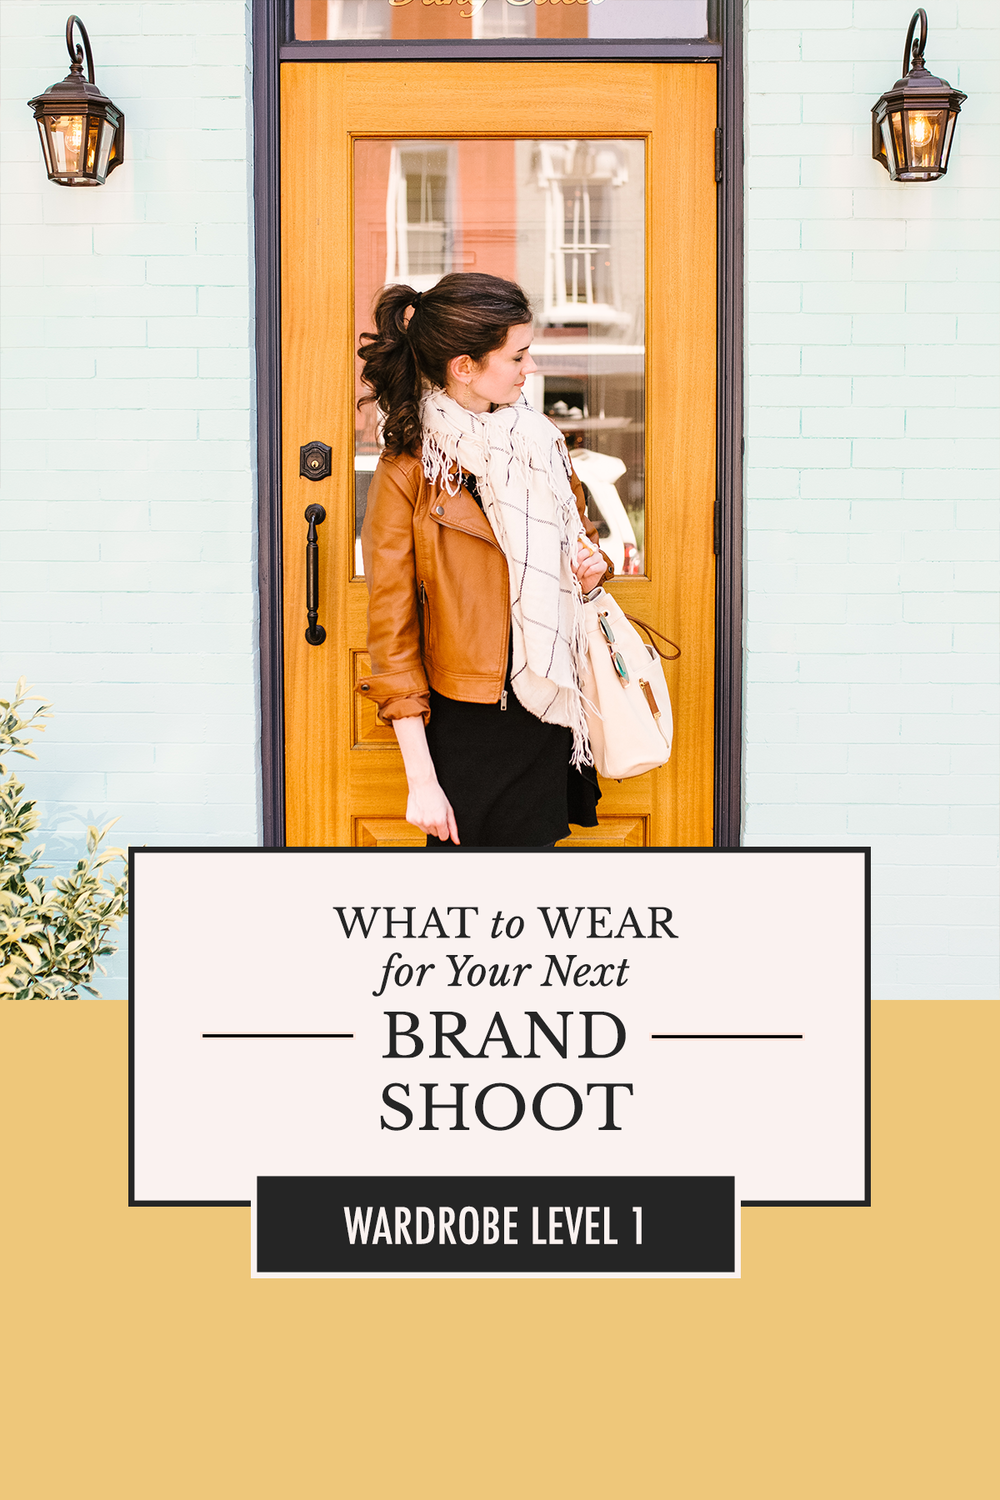 Nervous about what you should wear when you have professional photos taken? Use these 8 tips to look and feel your best! | What to Wear for Your Next Brand Shoot by Alexis the Greek